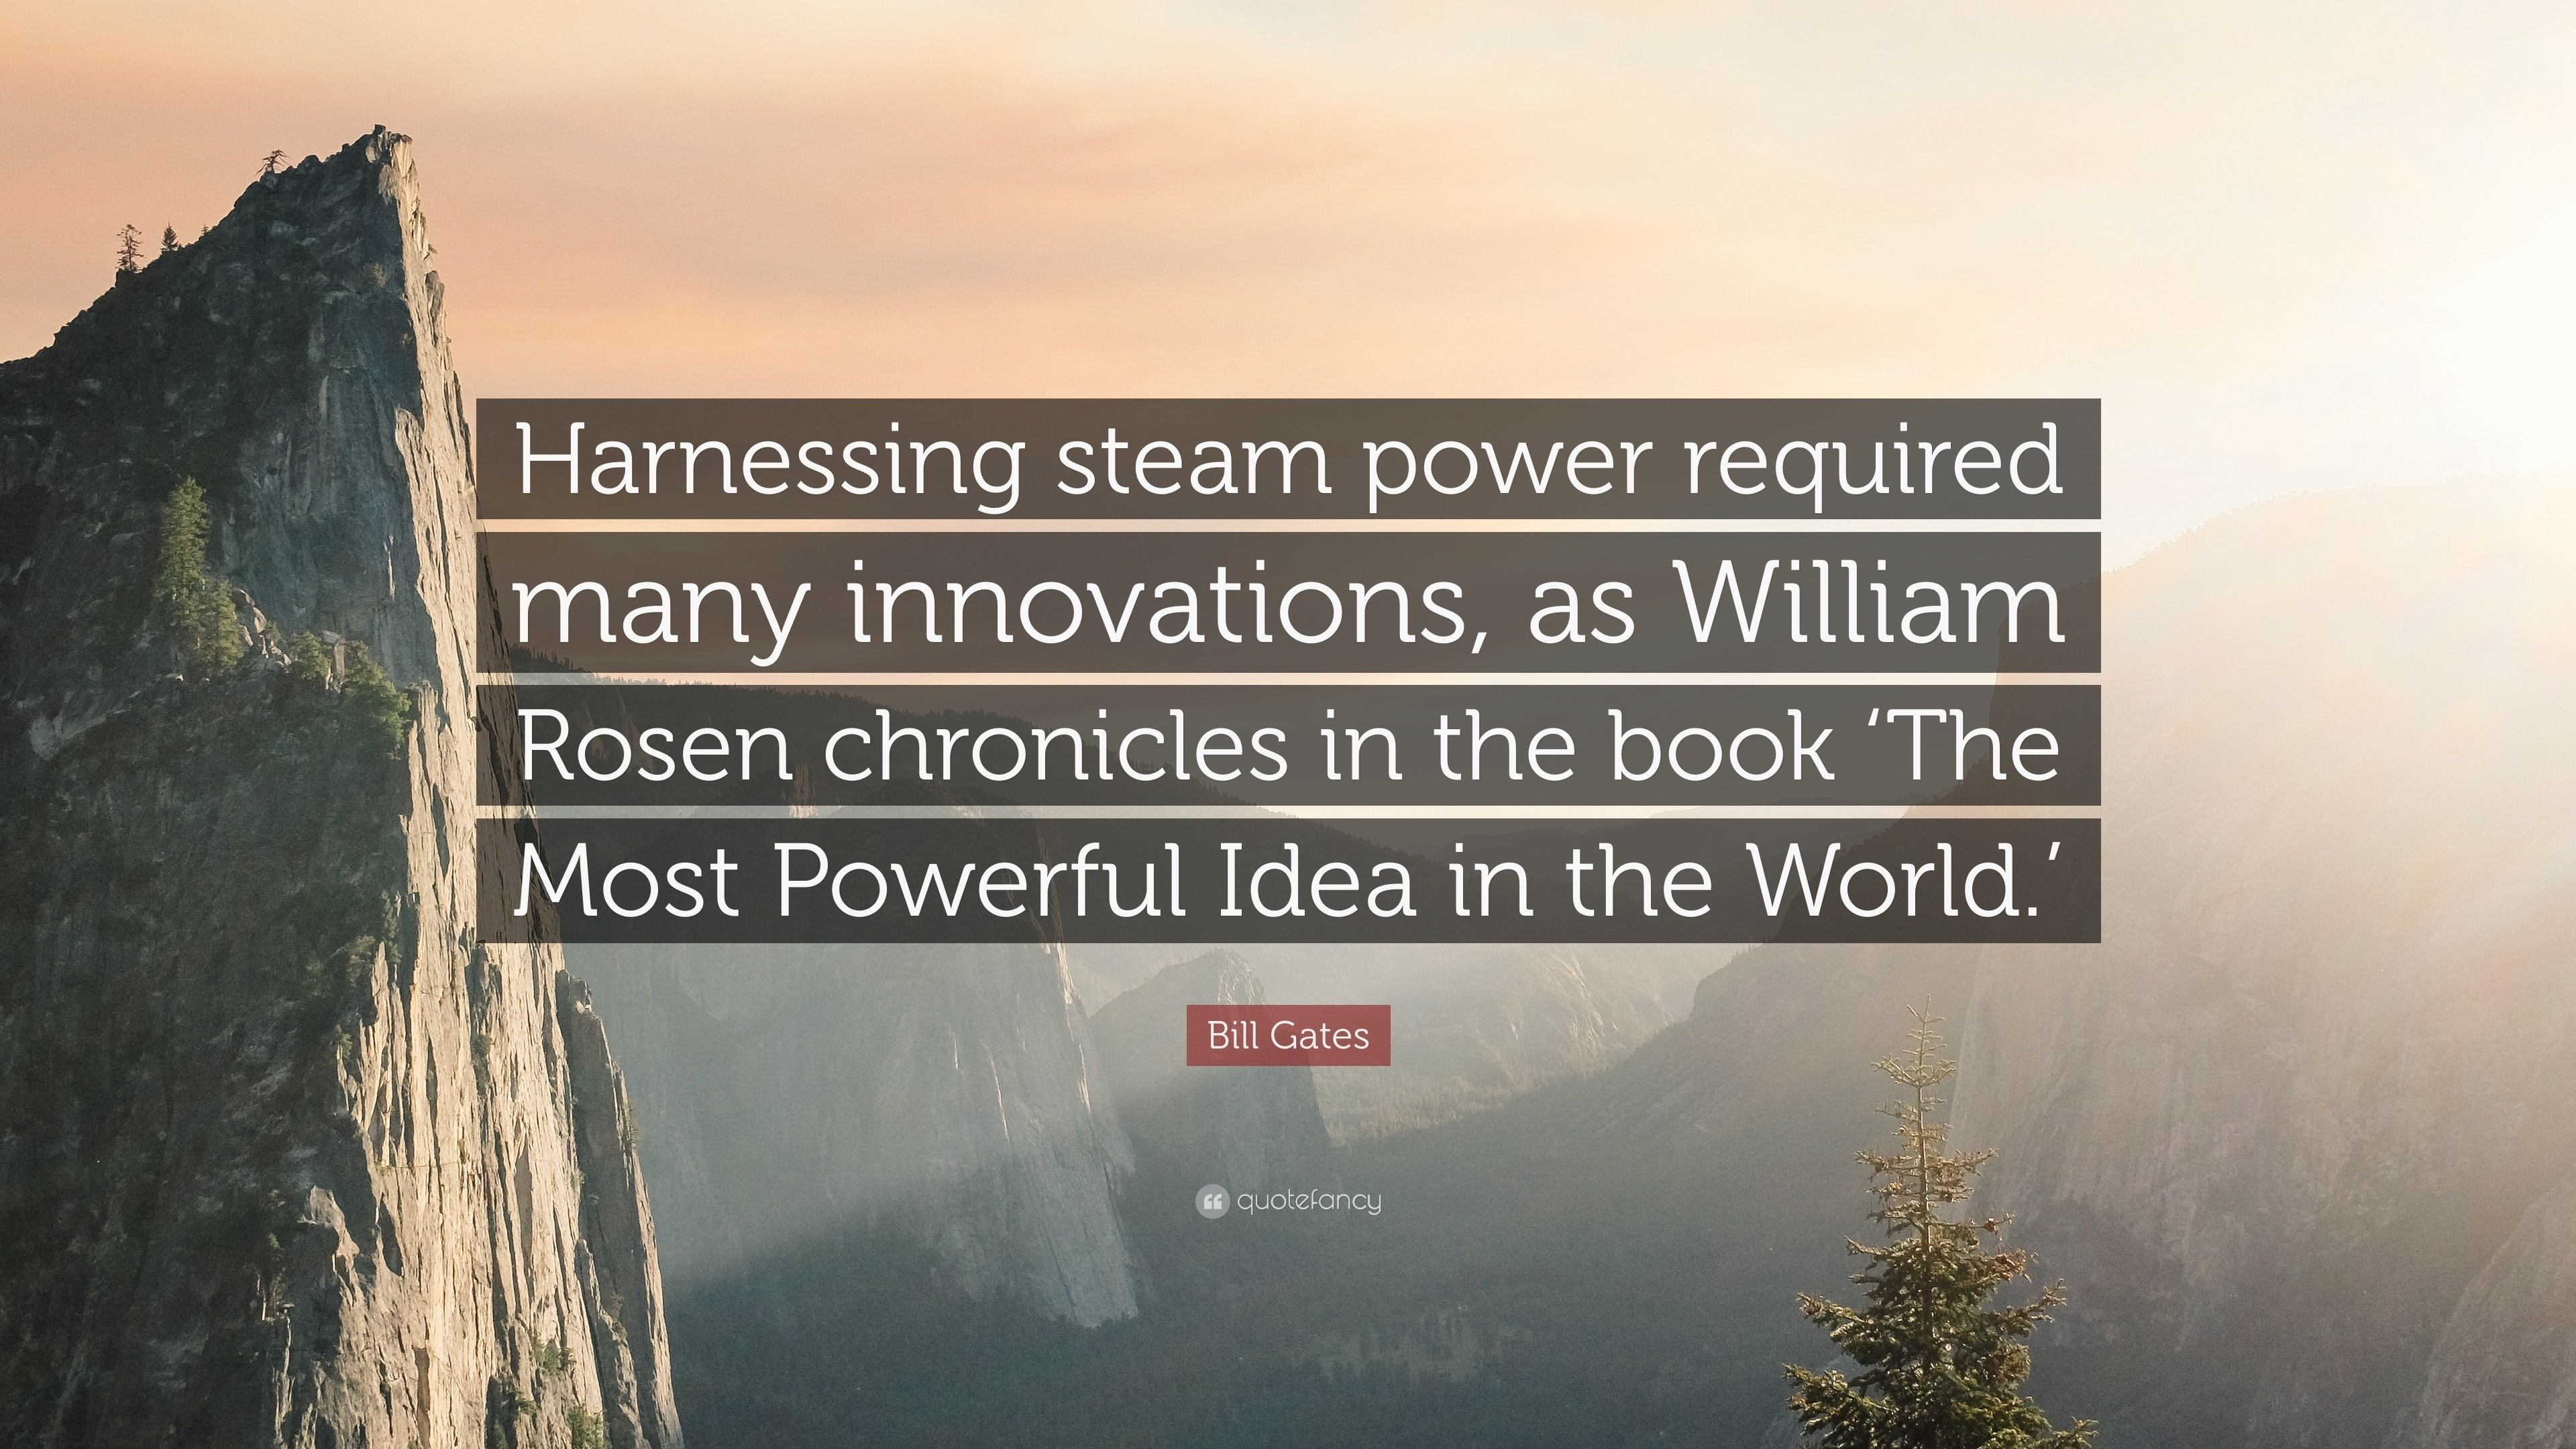 10 Amazing The Most Powerful Idea In The World bill gates quote harnessing steam power required many innovations 2021